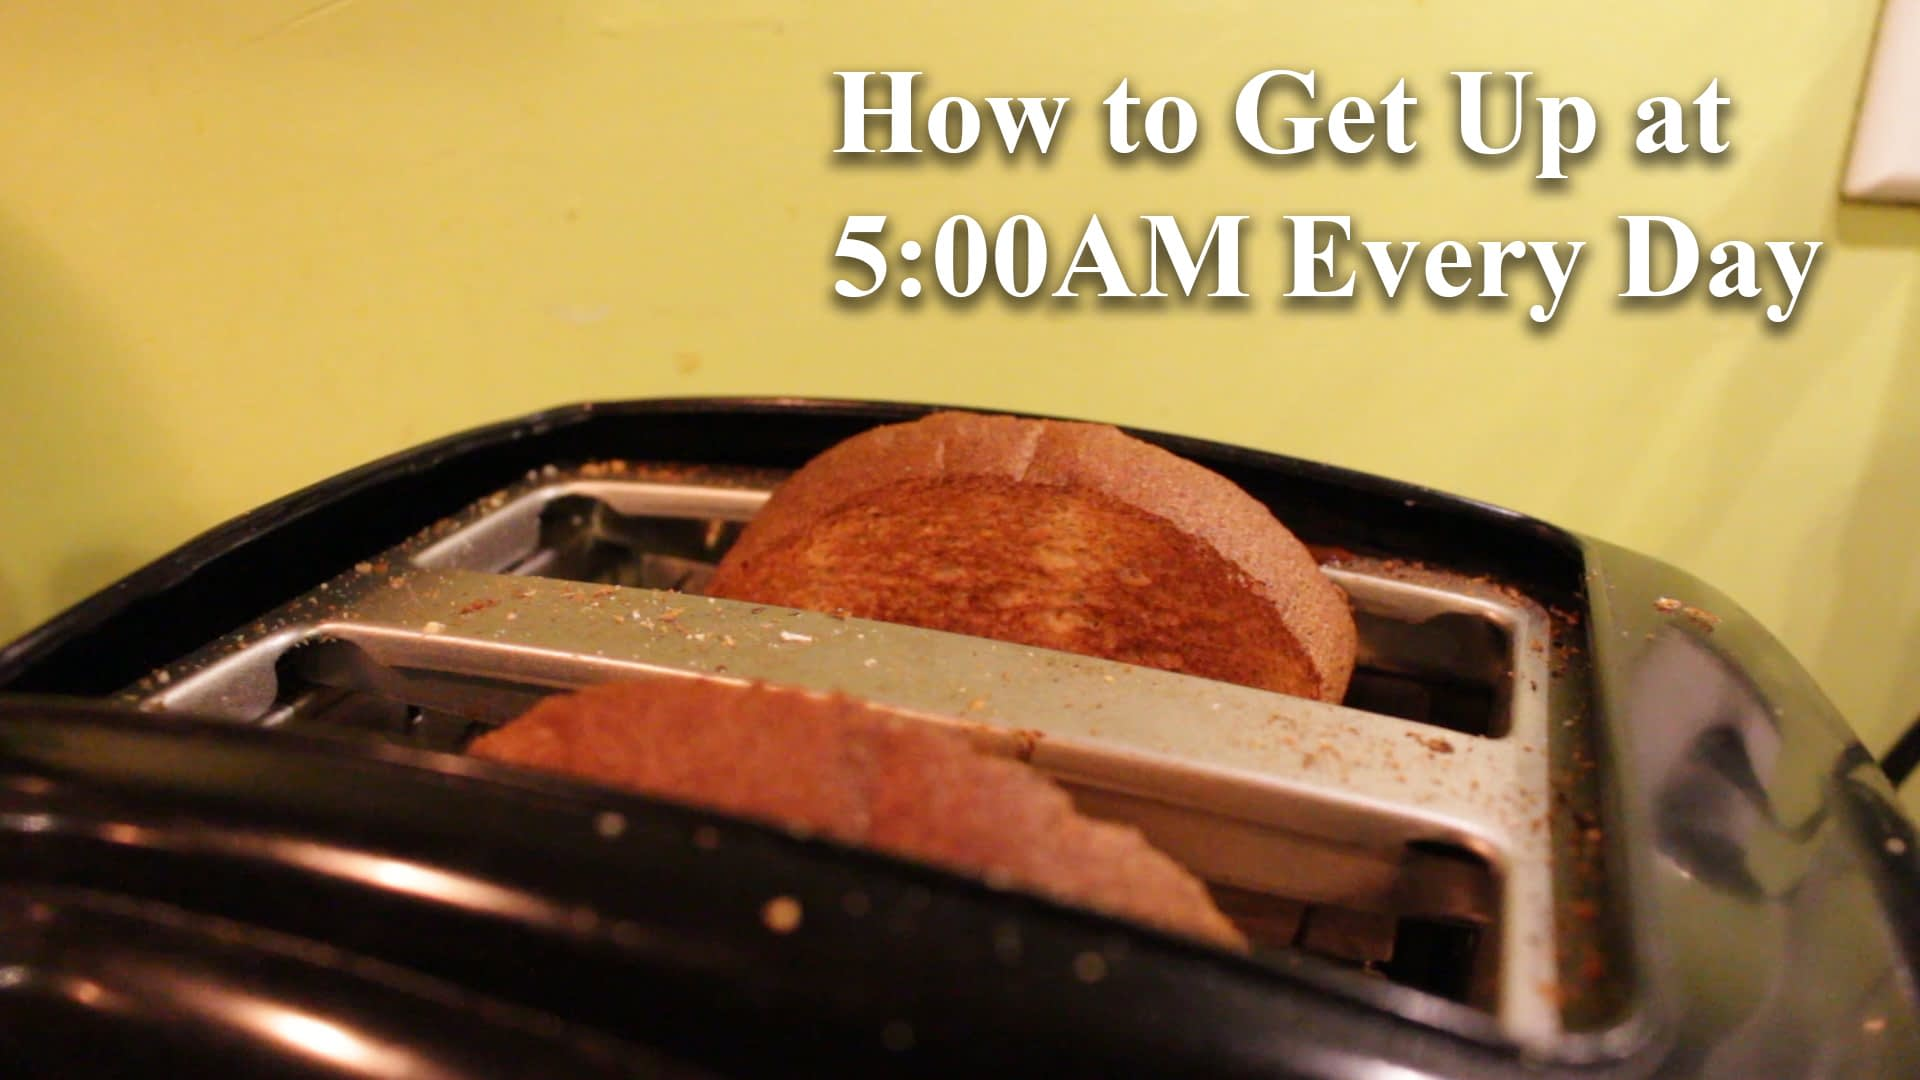 How to get up at 5AM every day